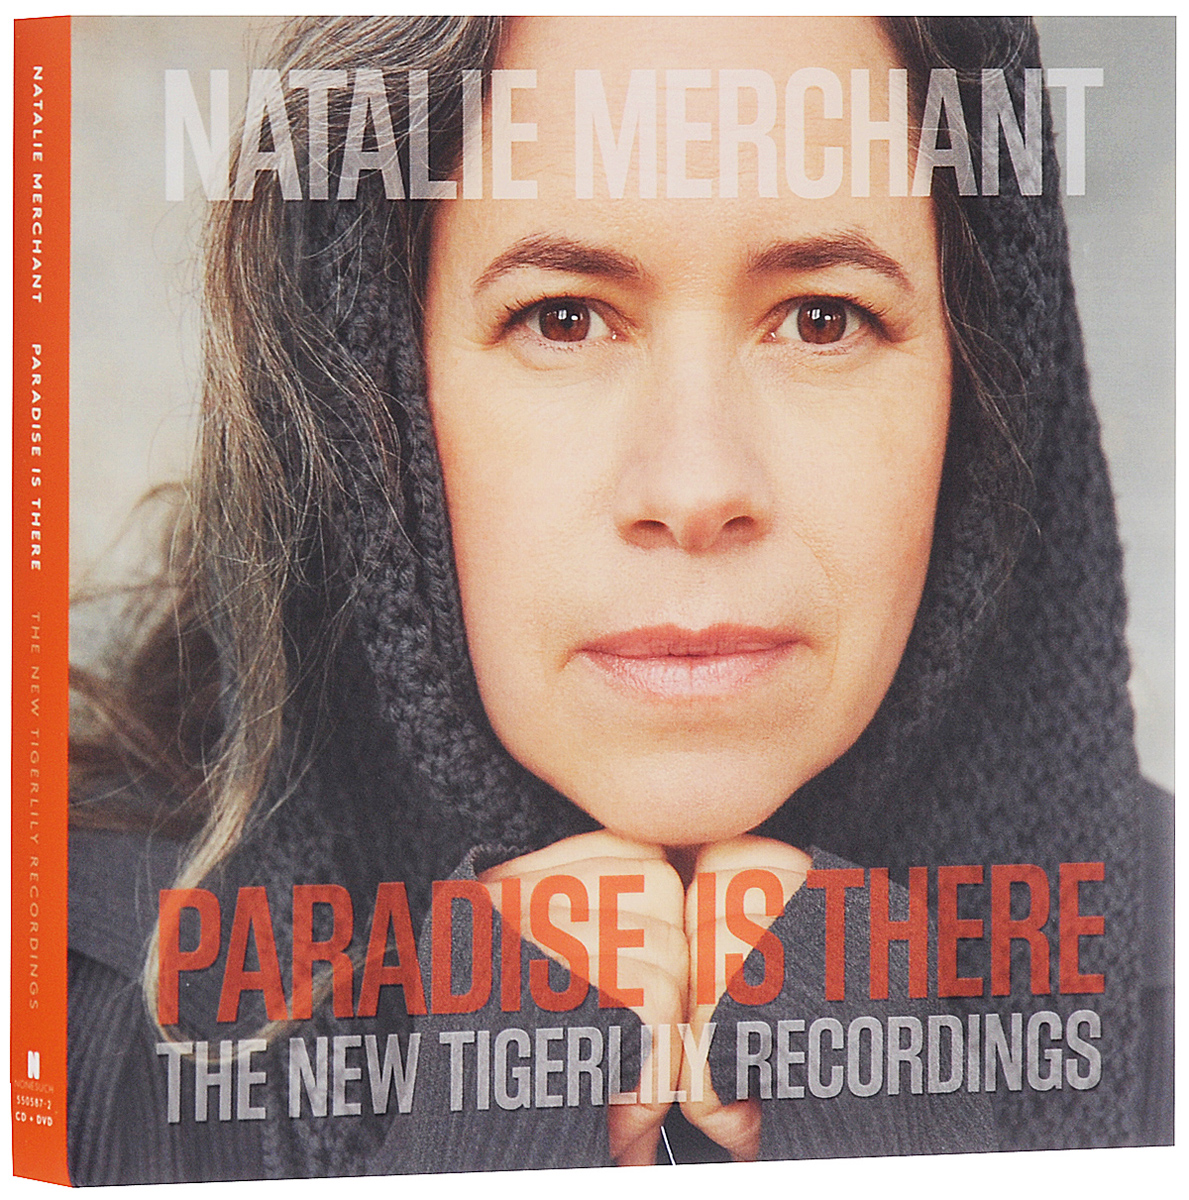 Натали Мерчант Natalie Merchant. Paradise Is There. The New Tigerlily Recordings (CD + DVD) shakespeare w the merchant of venice книга для чтения